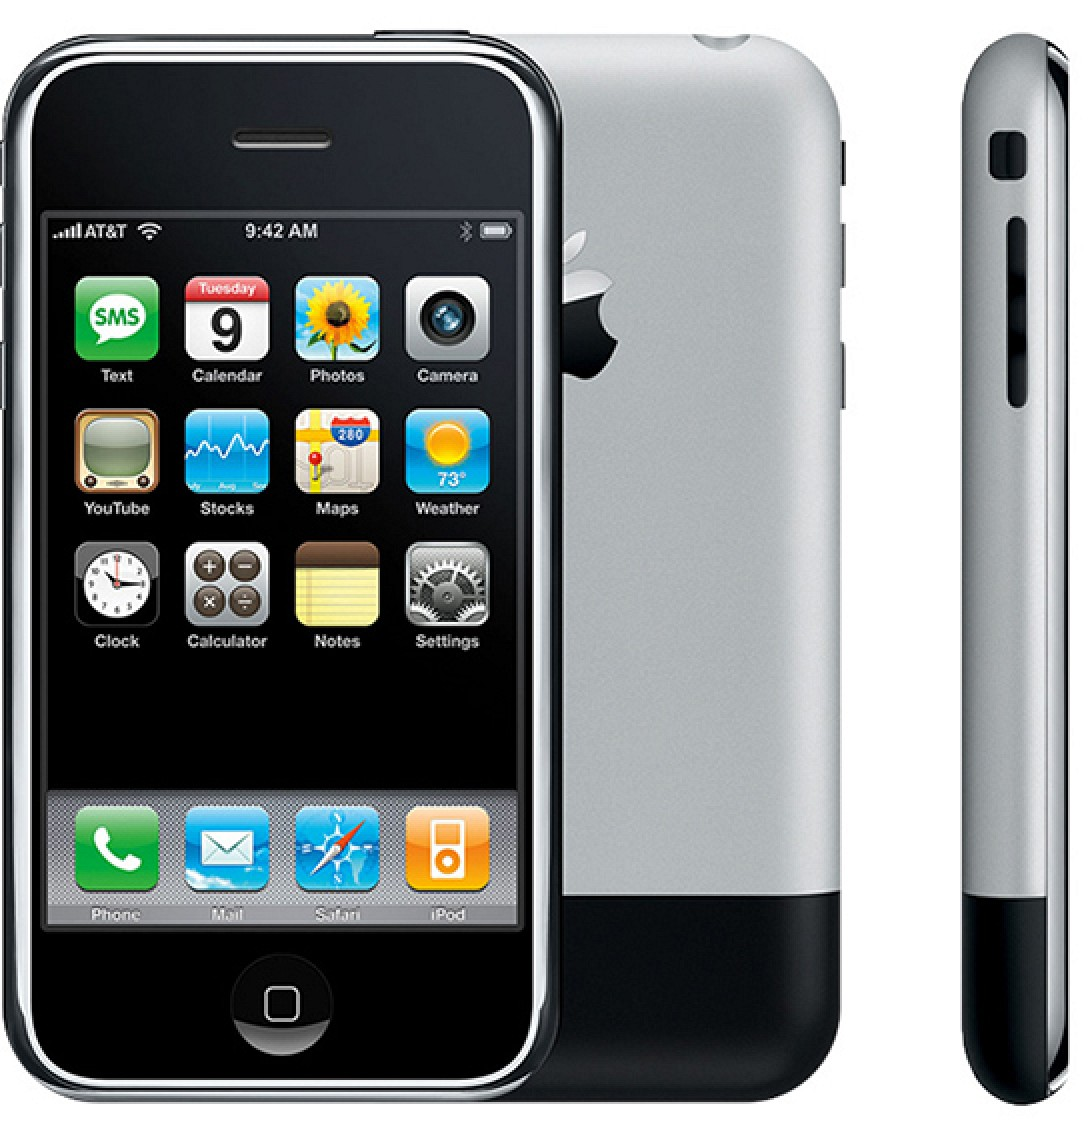 photo image Phil Schiller Says iPhone Was 'Earth-Shattering' Ten Years Ago and Remains 'Unmatched' Today